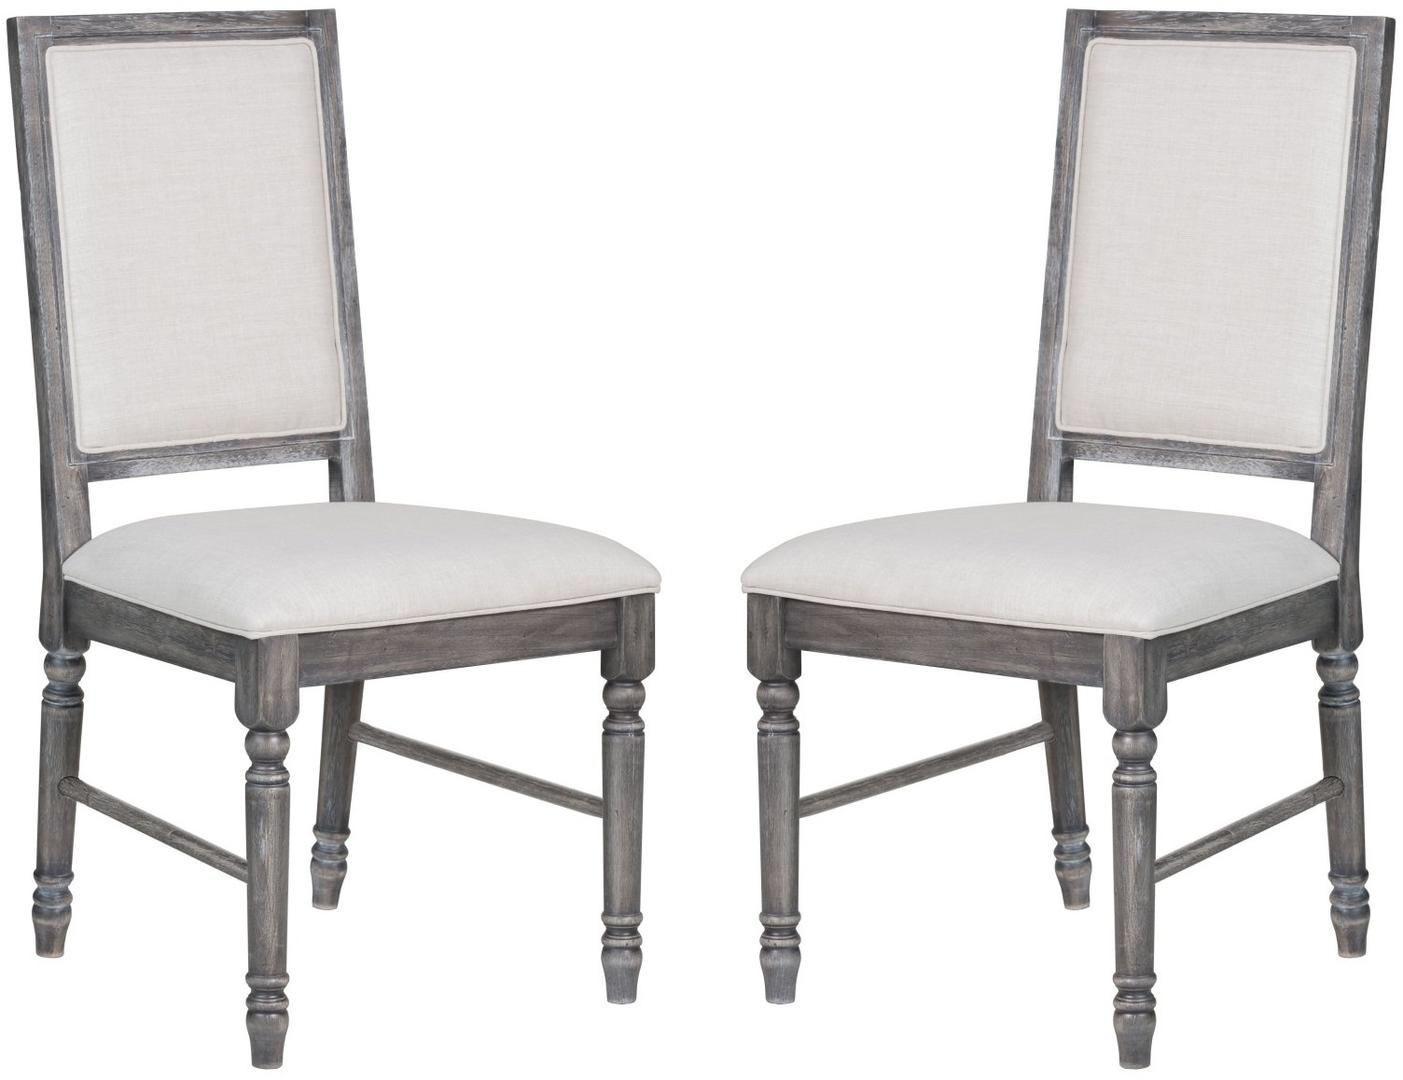 Acme 66182 Leventis Gray Wood Finish 2 Piece Dining Chair